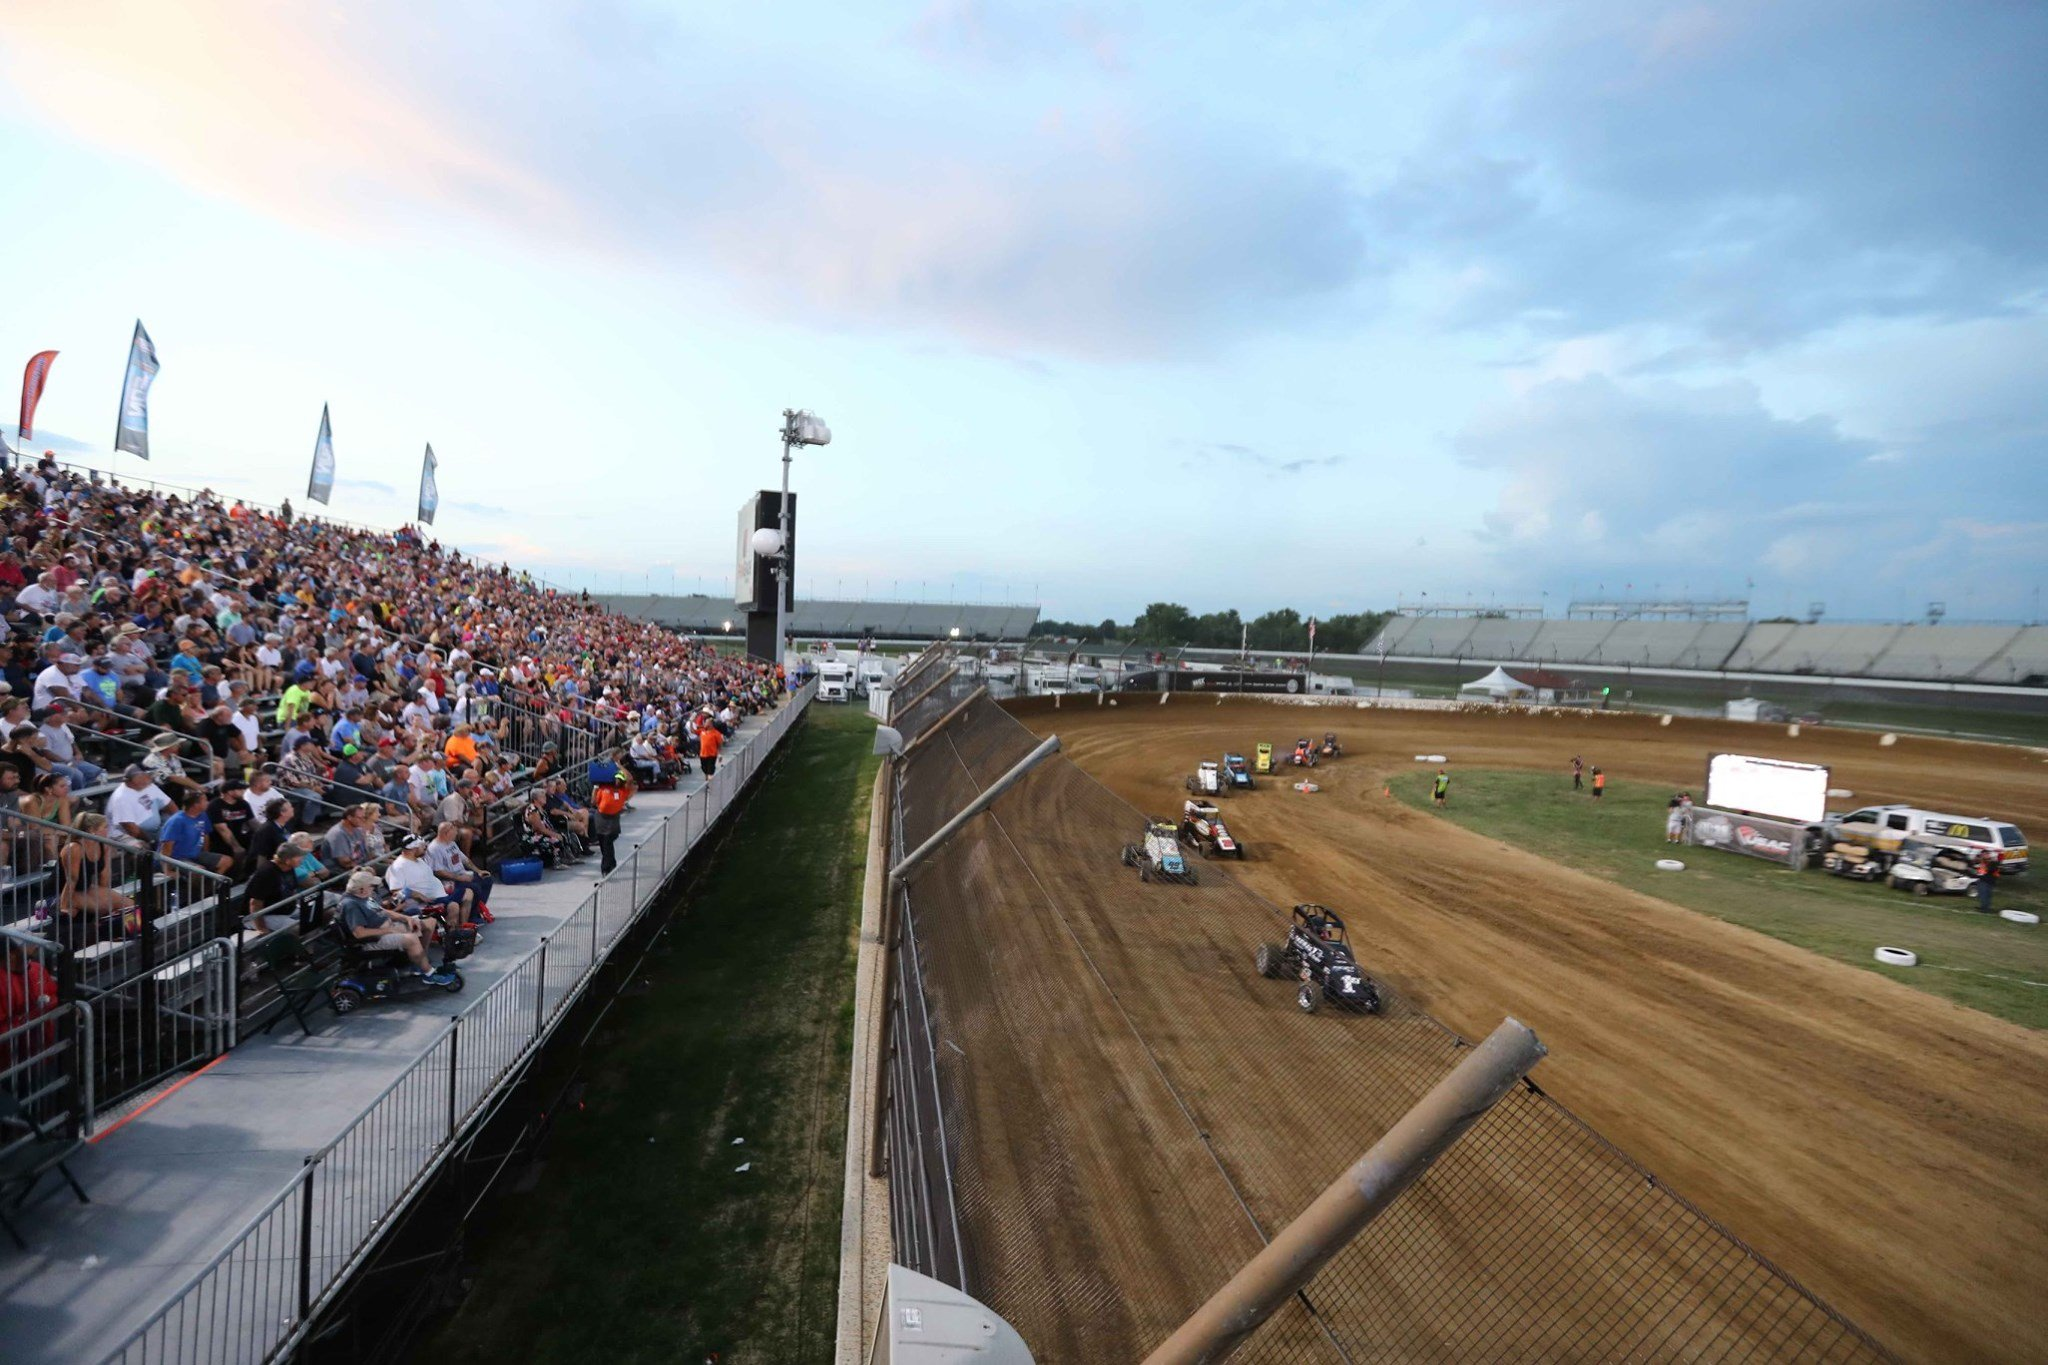 Indianapolis Motor Speedway - BC 39 Dirt Race